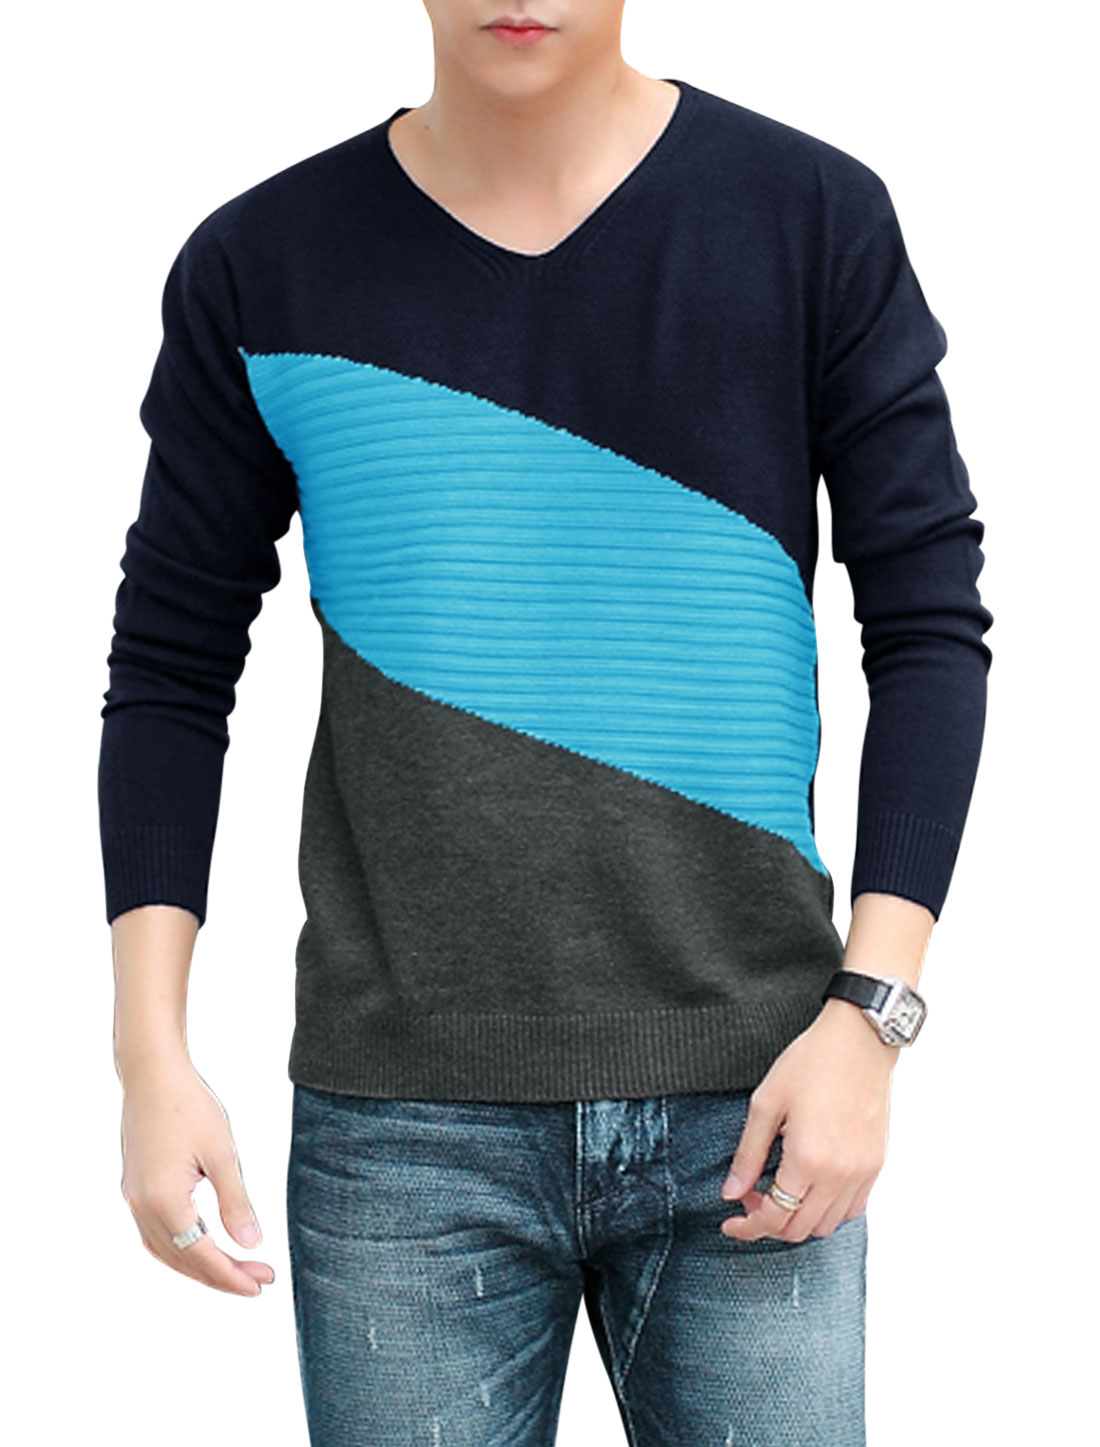 Men V Neckline Long Sleeves Contrast Color Leisure Knitted Top Navy Blue Gray M